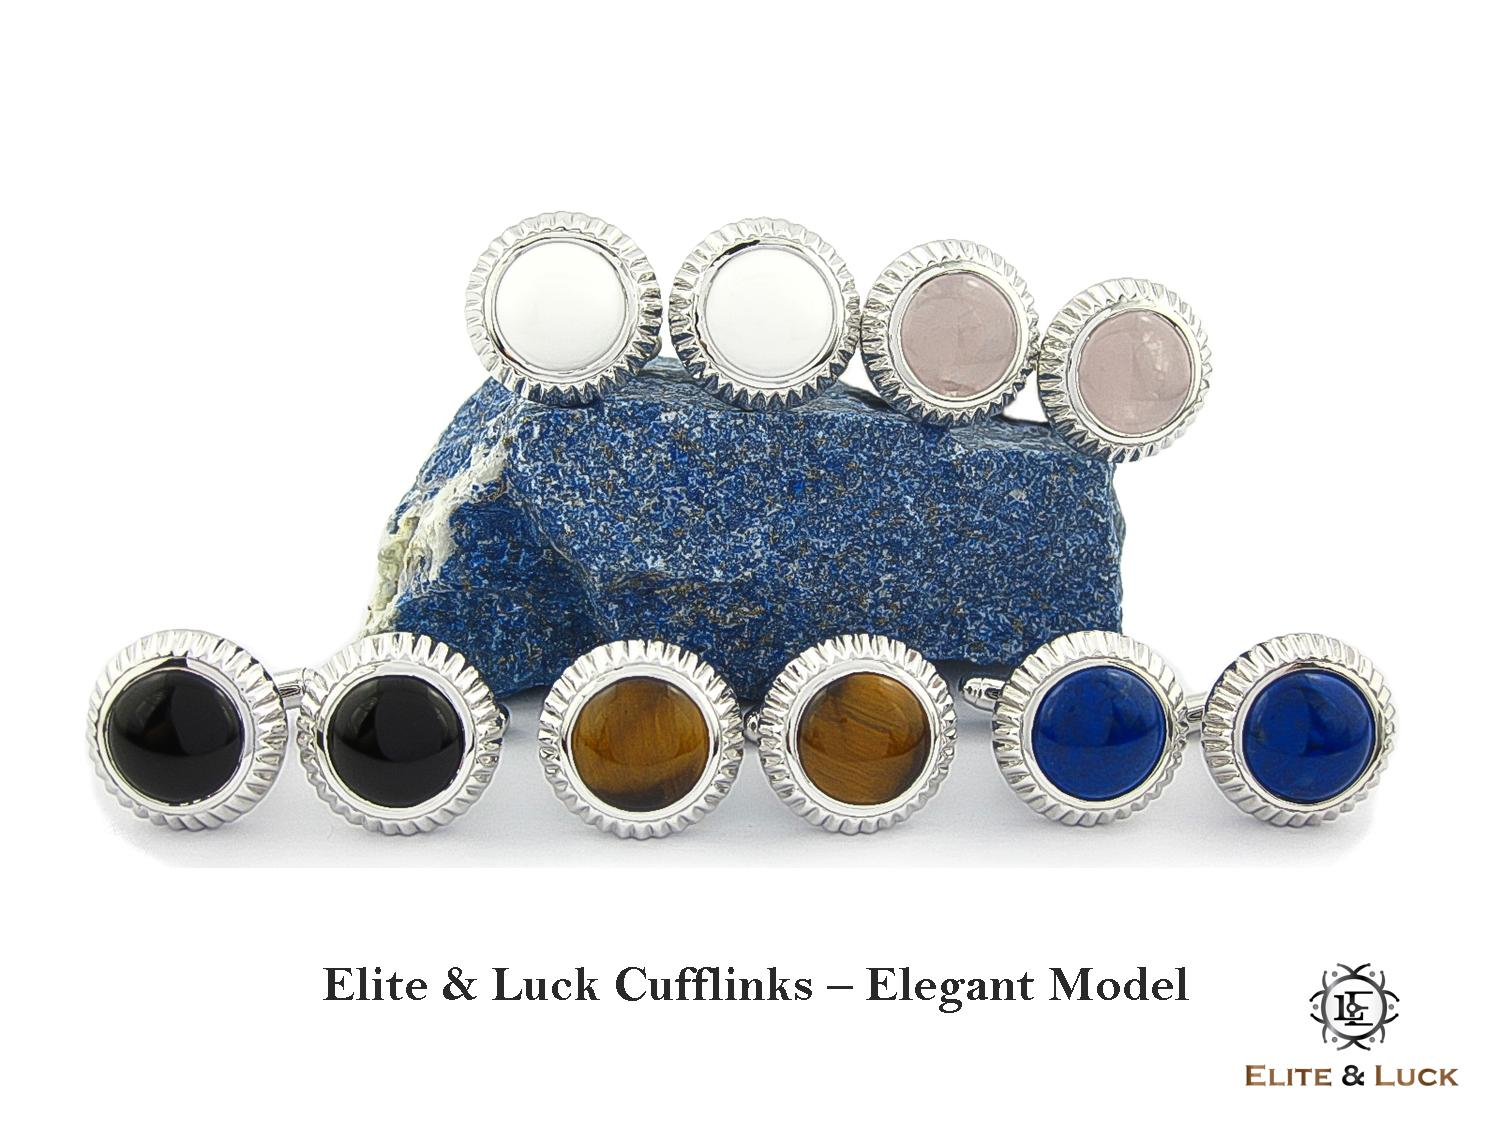 Elite & Luck Gemstone Cufflinks for Men, Elegant Model